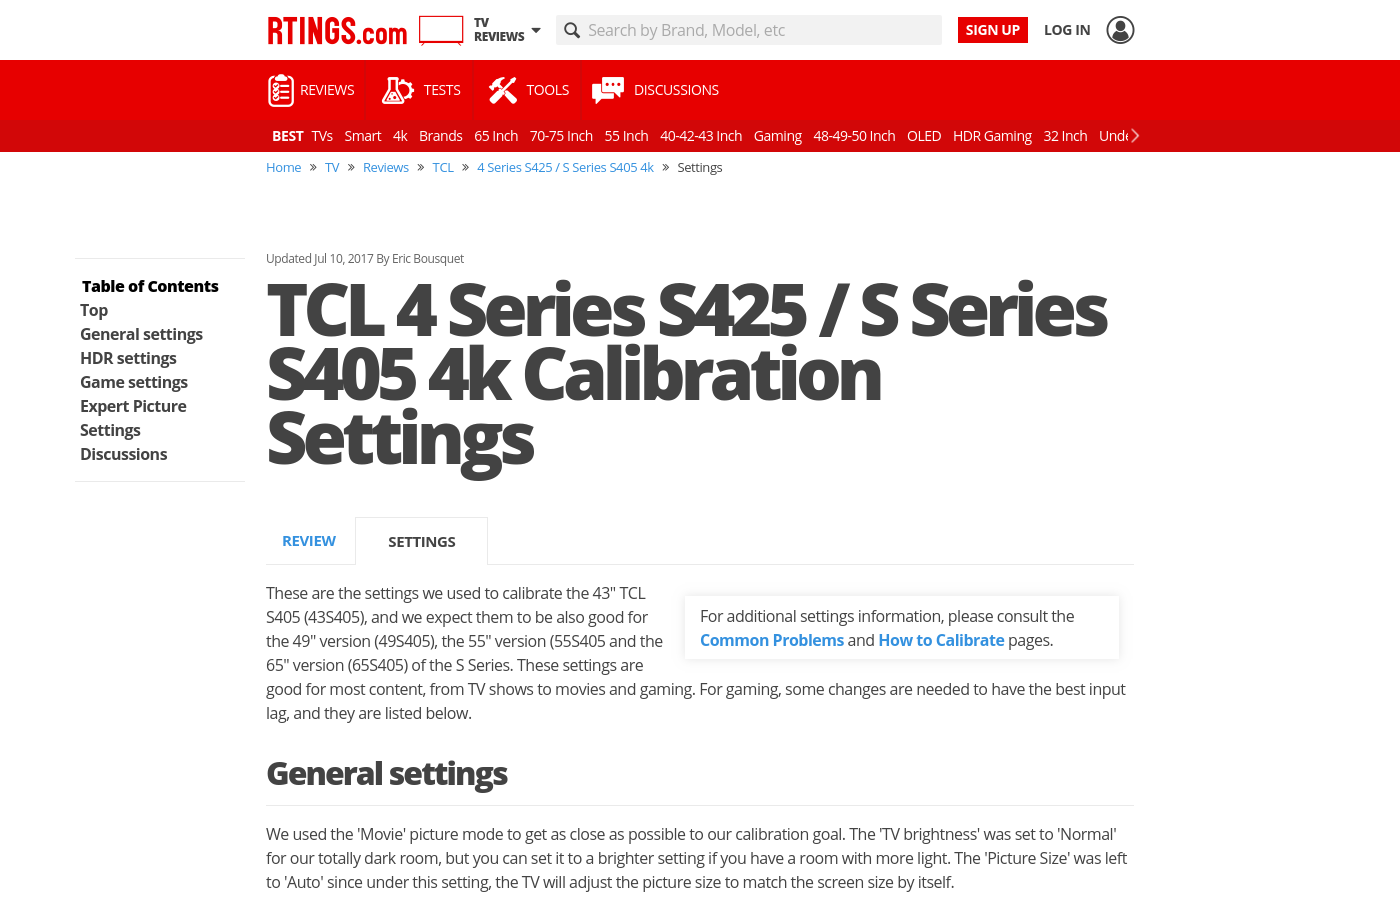 Tcl 4 Series S425 S Series S405 4k Calibration Settings